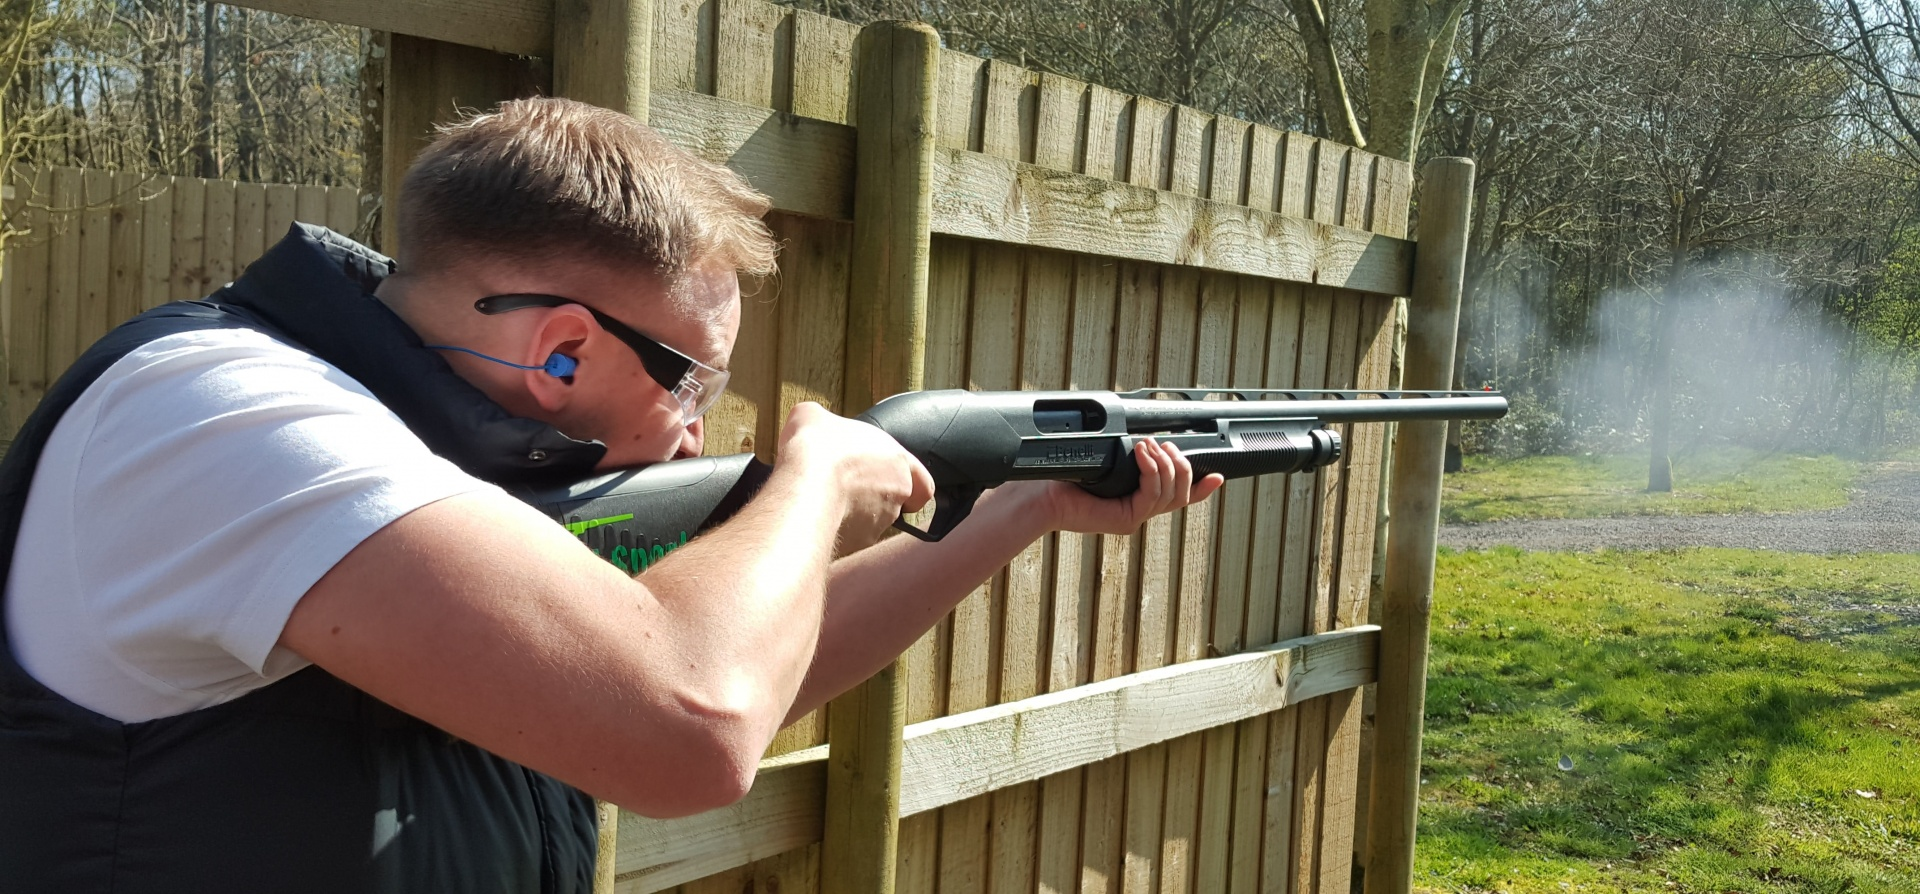 Pump Action Shotgun Experience Leicestershire-2